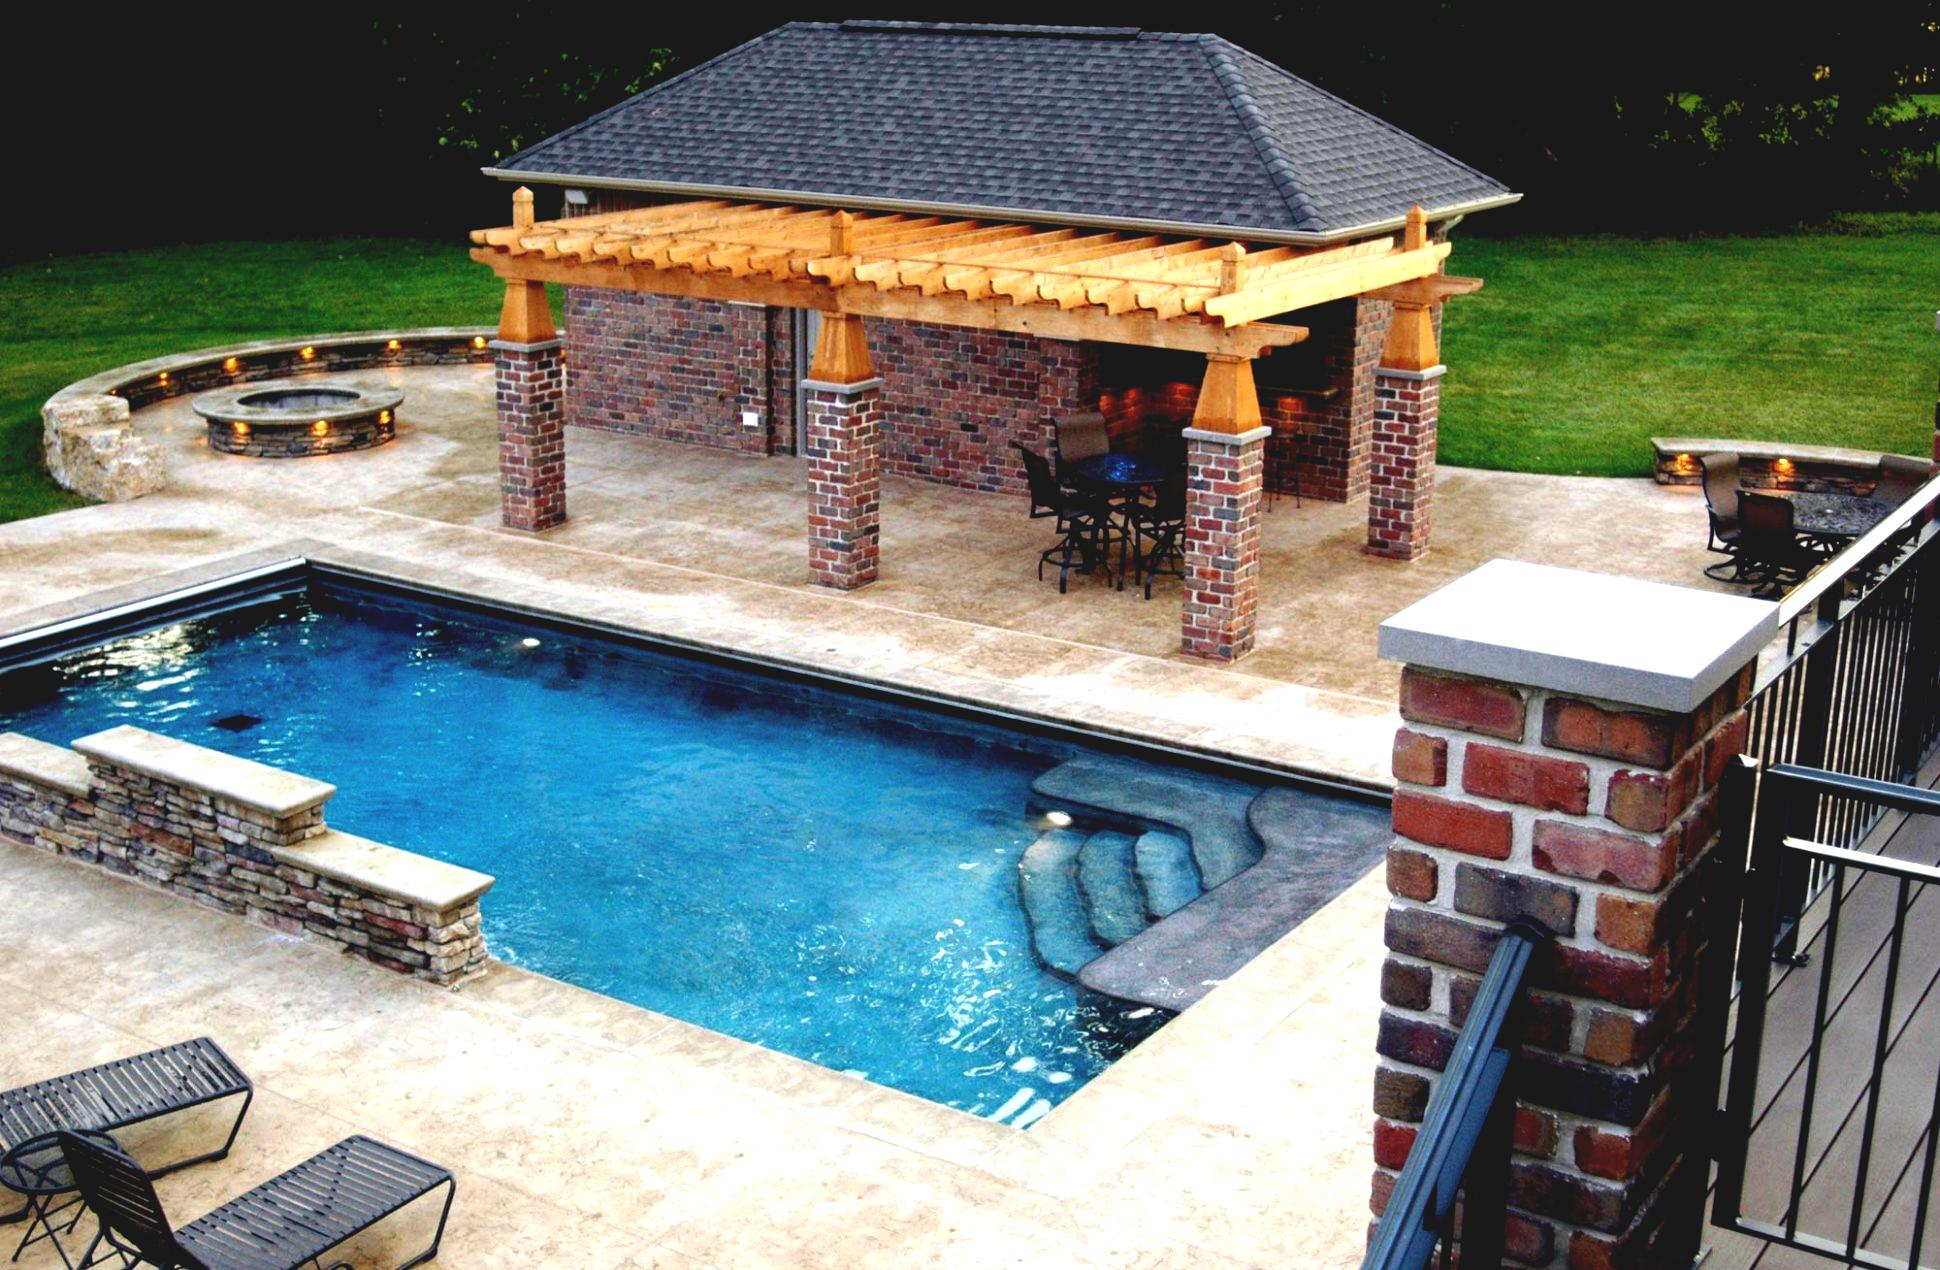 Outdoor pool and bar designs - bring out the beauty with ... on Backyard Pool Bar Designs id=71957